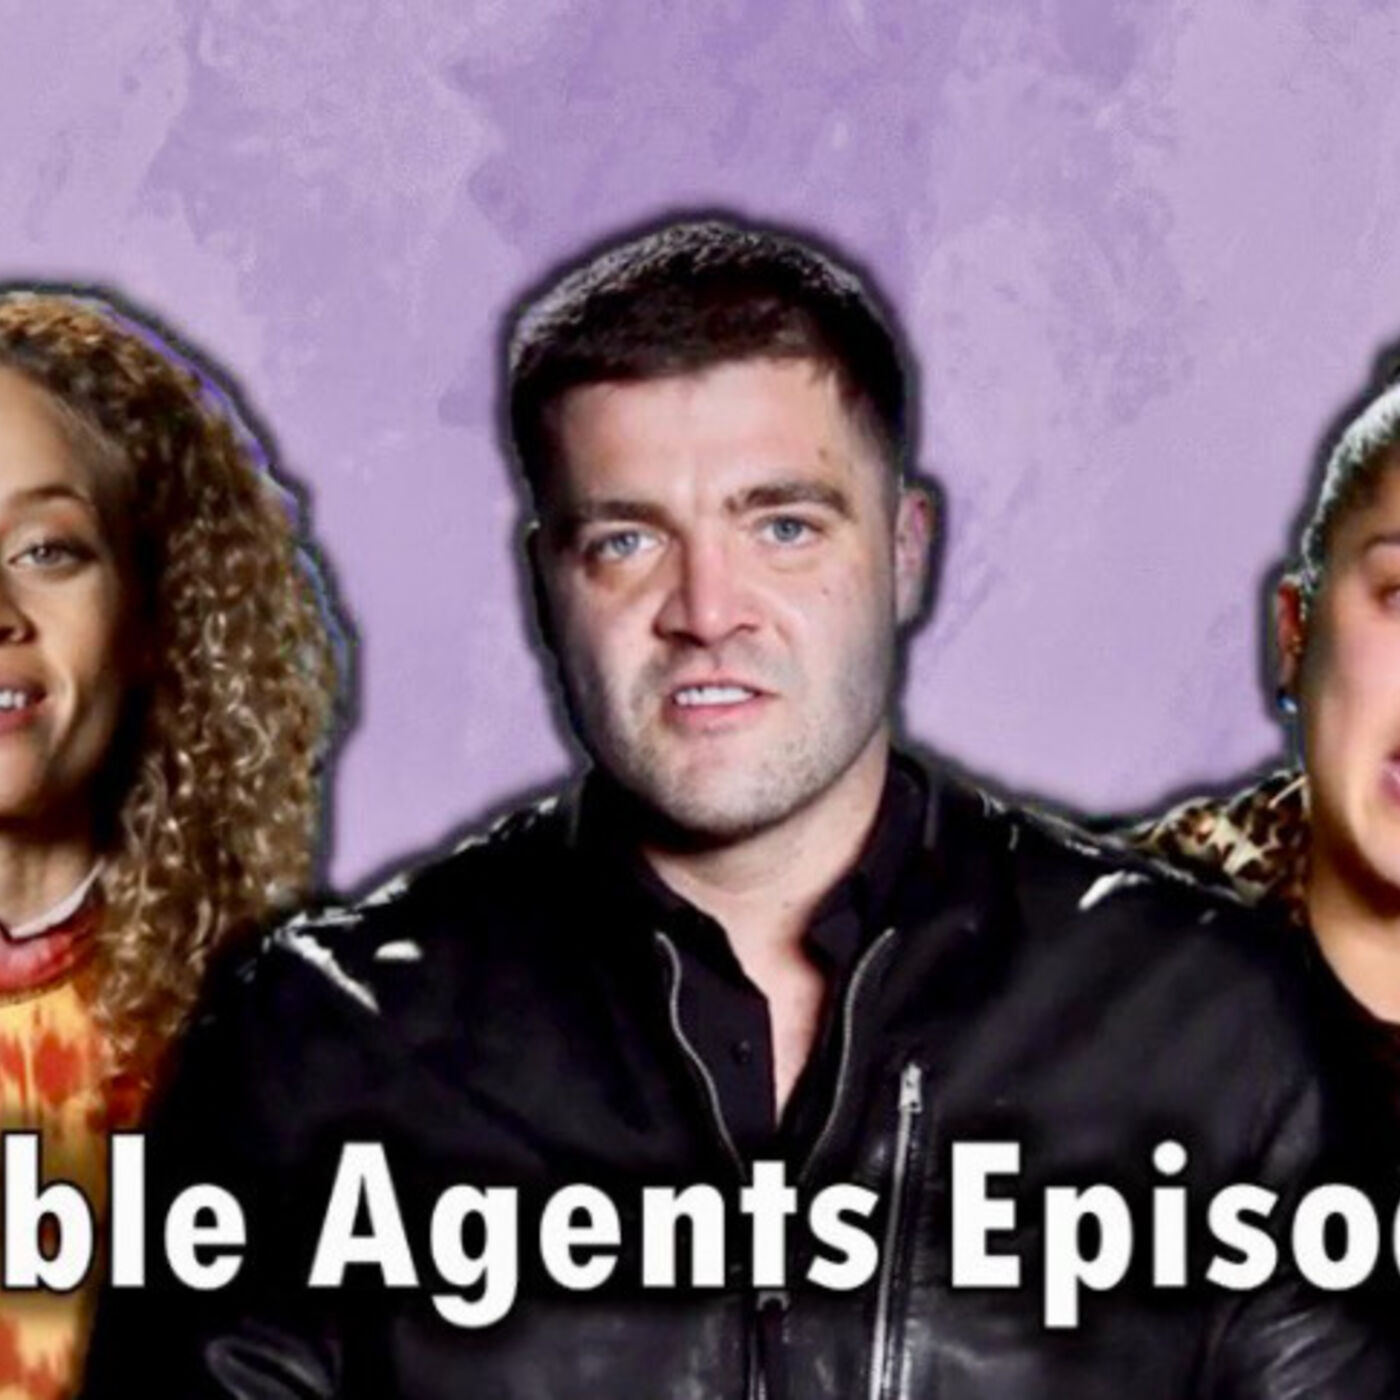 The Challenge Double Agents Episode 18 Recap: Who is this Amber?